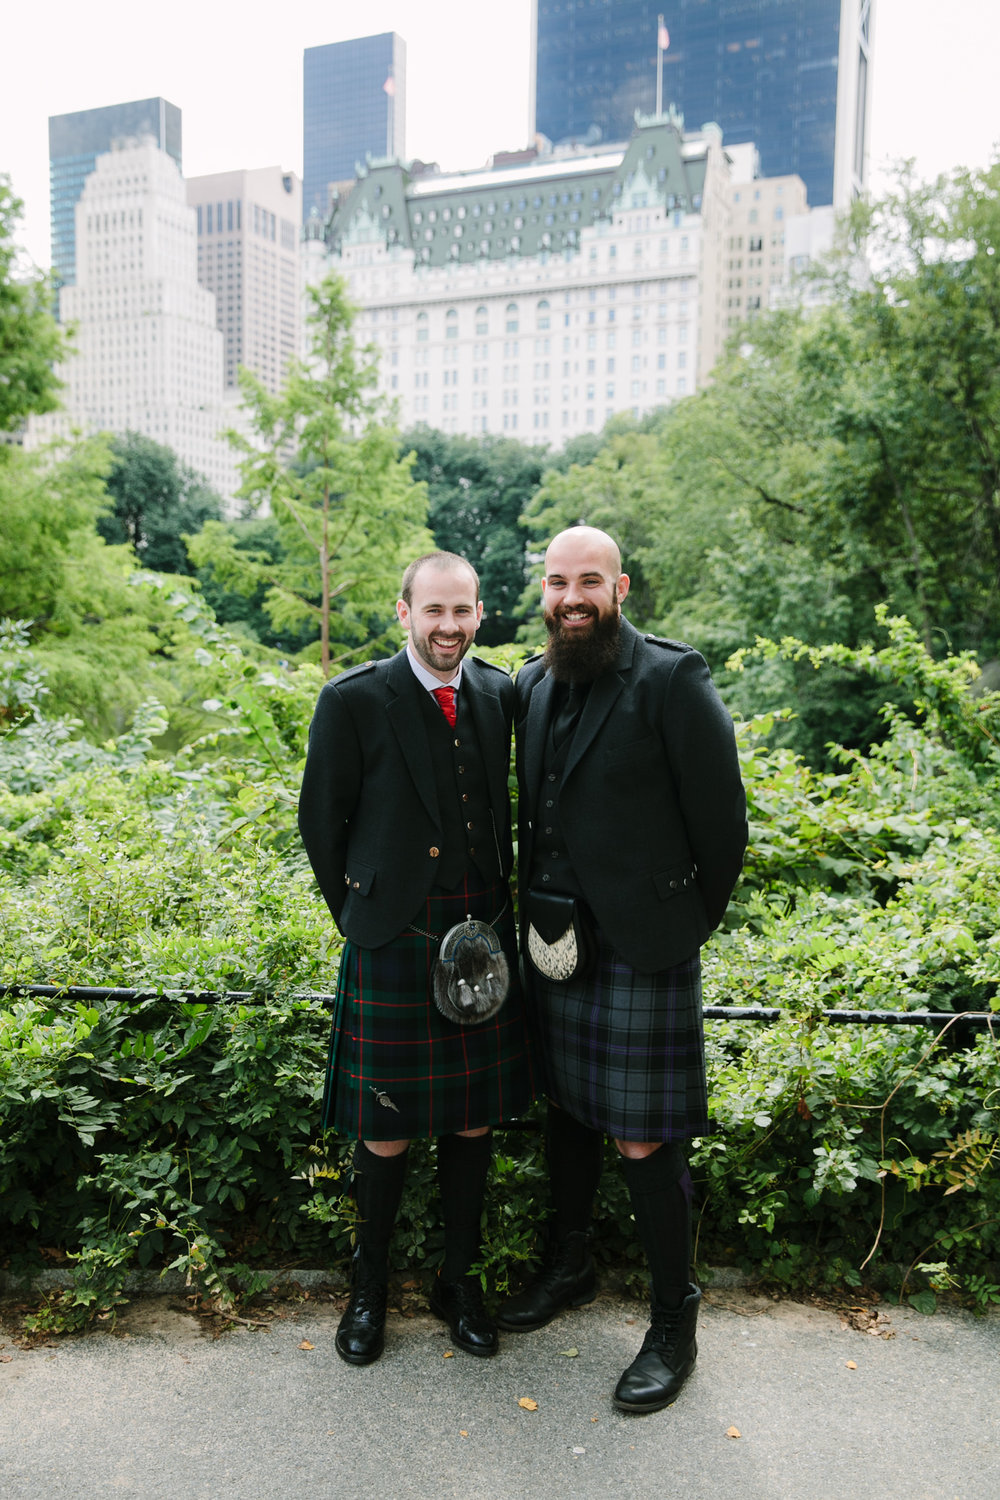 Central Park-Gapstow-bridge-wedding_H&K-96.jpg